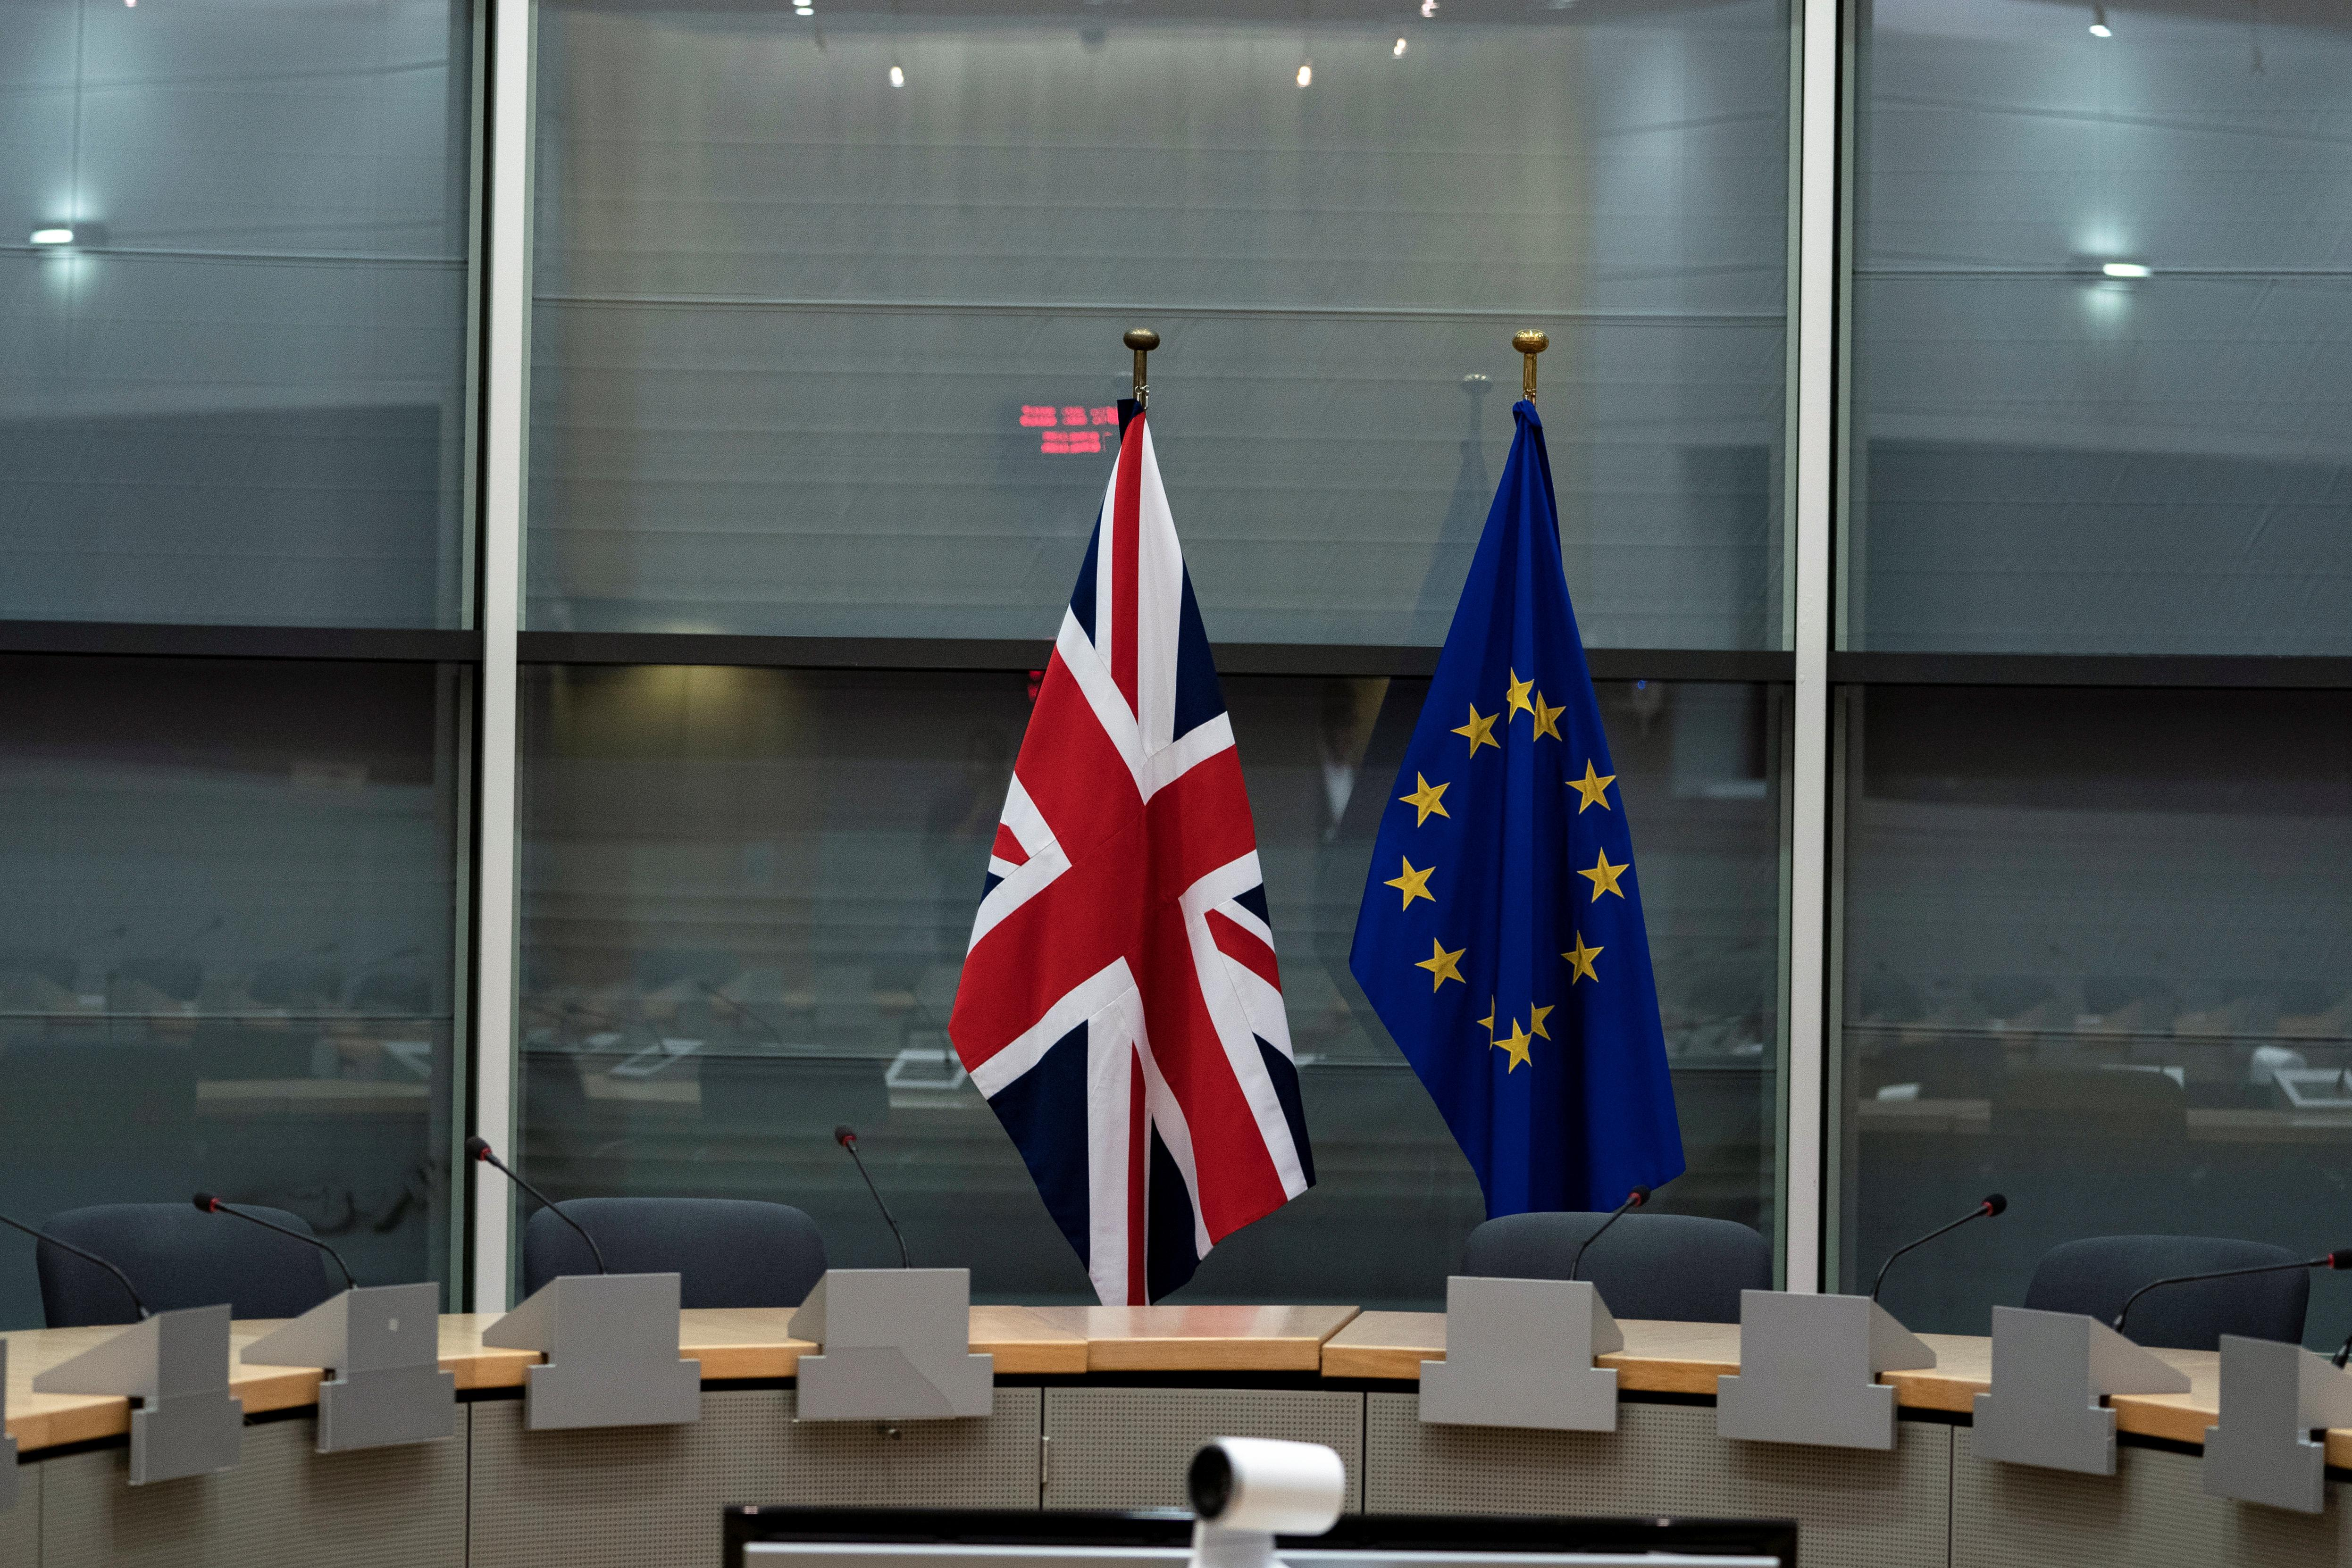 No Brexit or 'loophole' Brexit: what happens next in the UK?